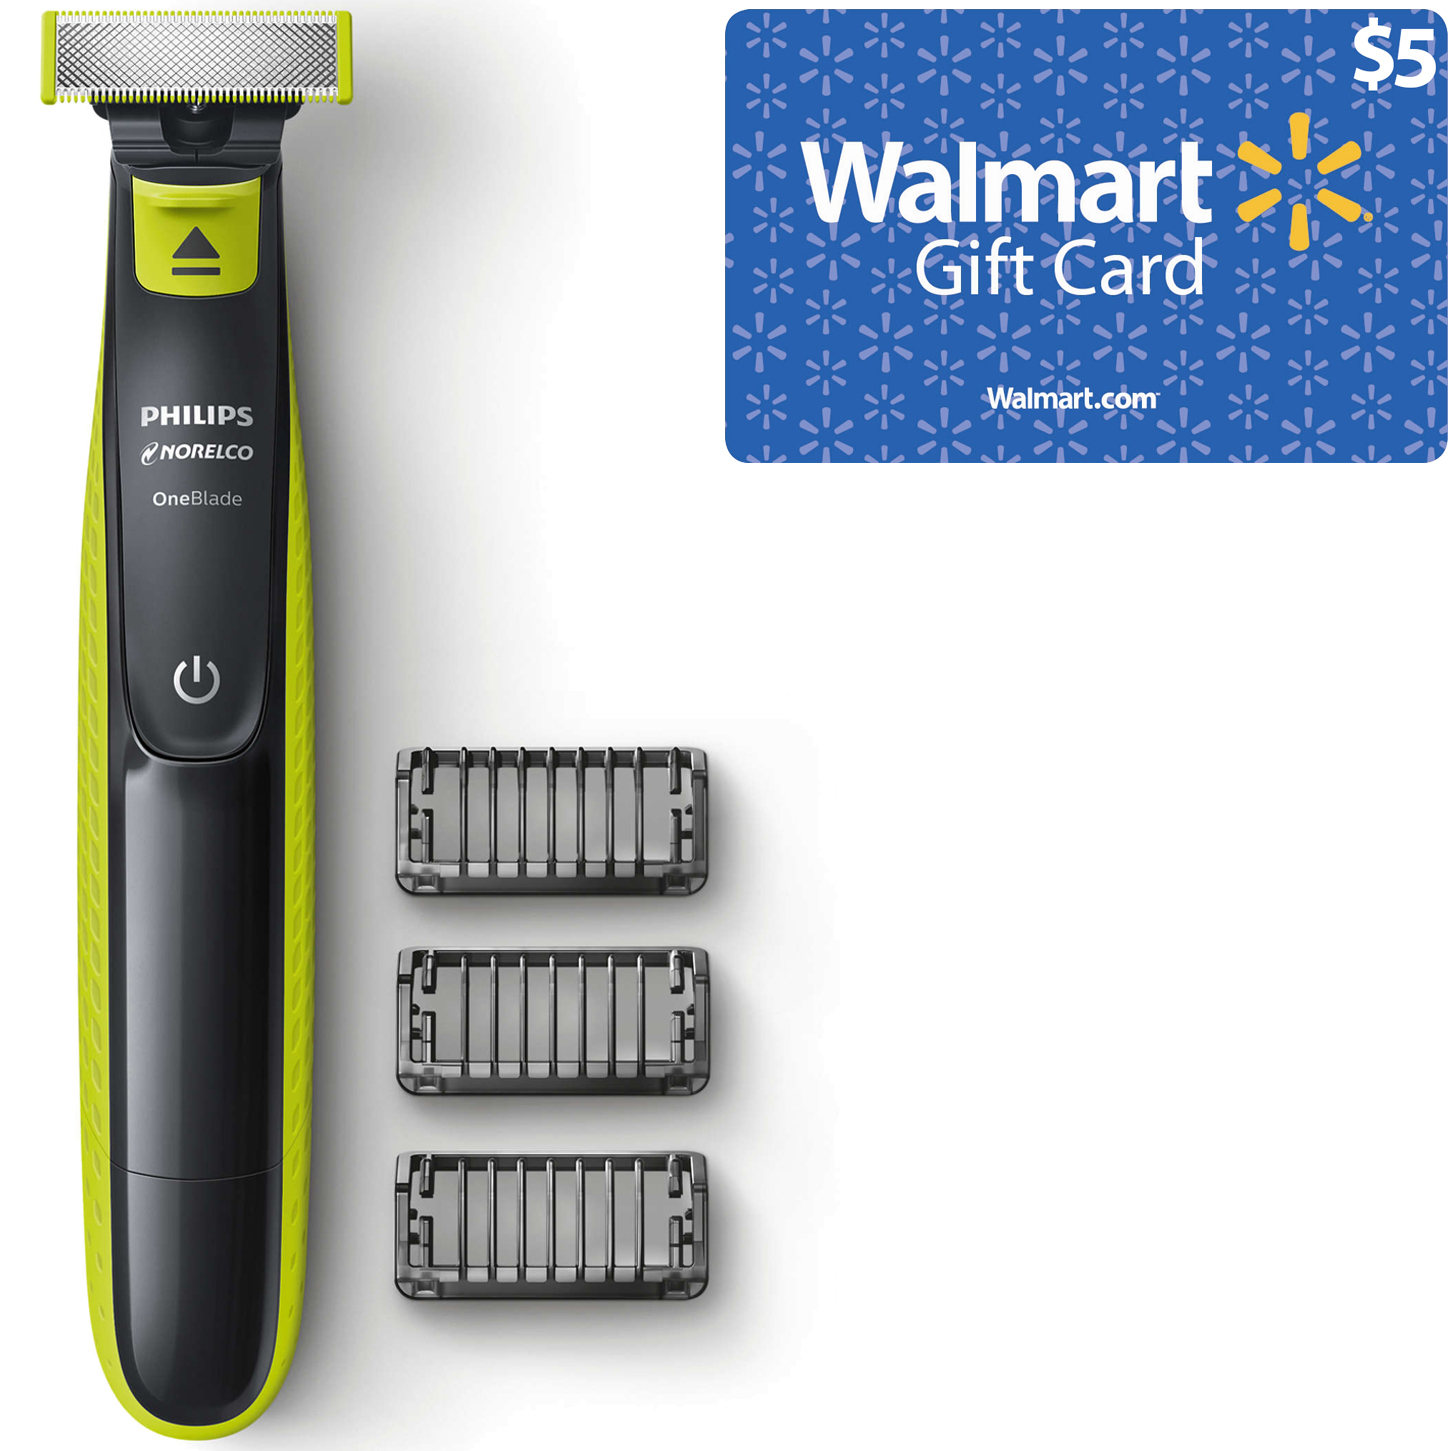 Philips Norelco OneBlade Electric Shaver and $5 Walmart Gift Card Bundle